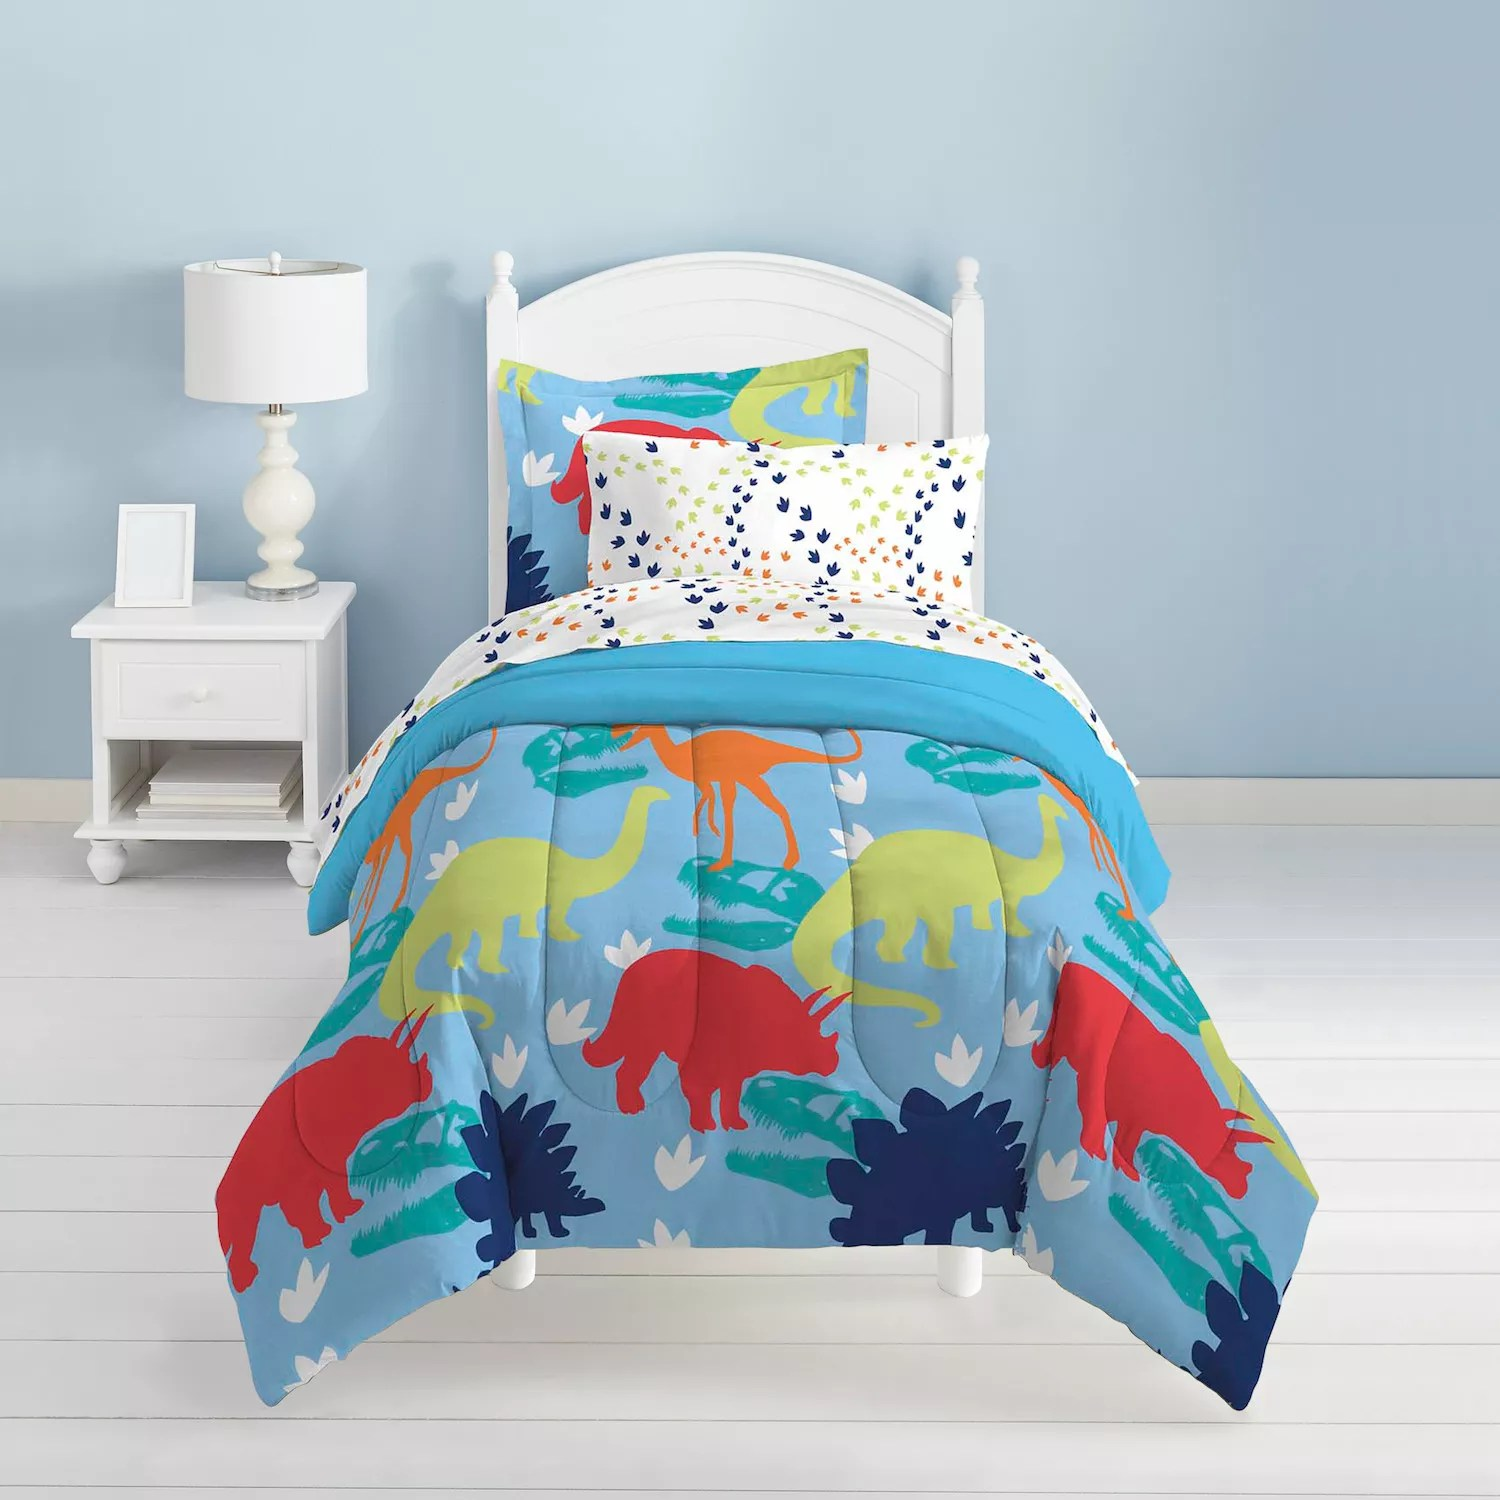 Bedding Stores Canberra Dream Factory Dinosaur Bed Set